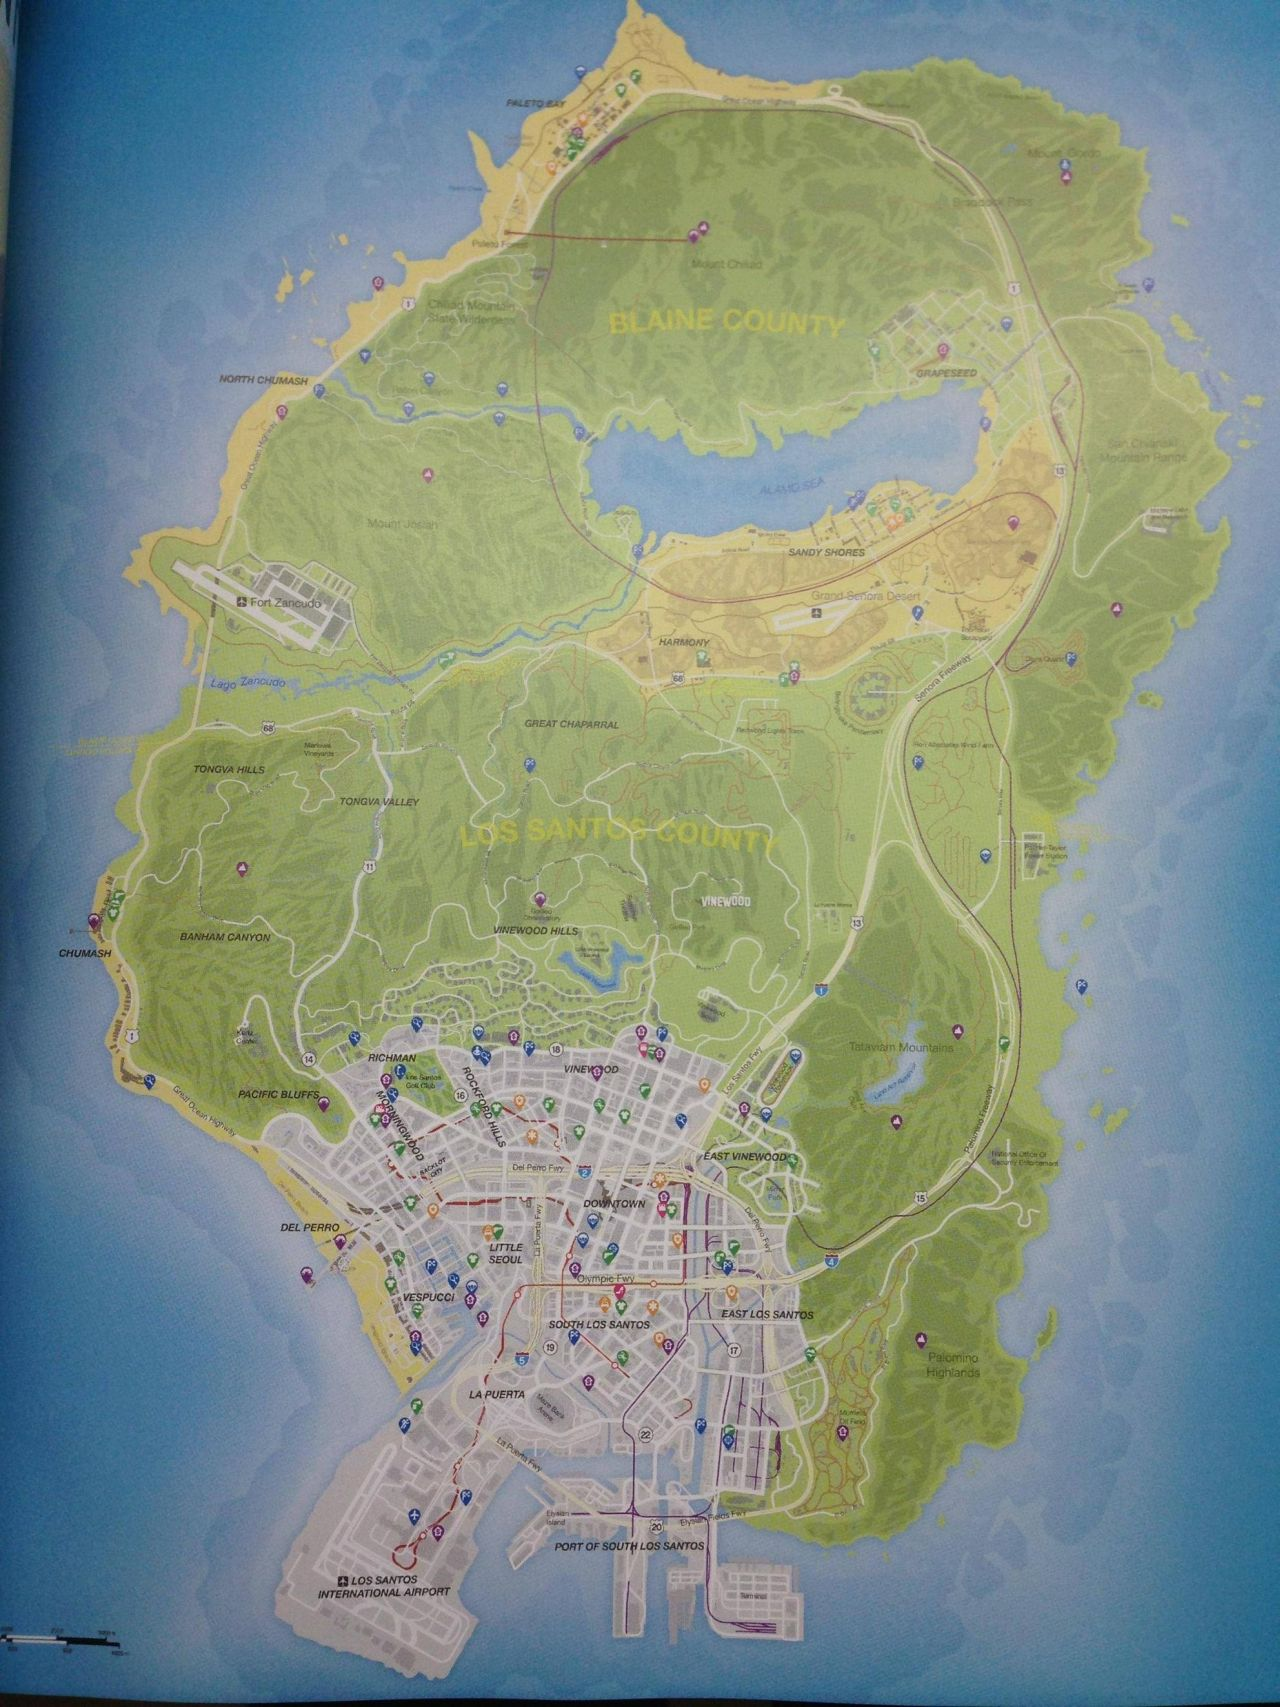 Gta 5 Hospital Location : hospital, location, Sandy, Shores, Maping, Resources